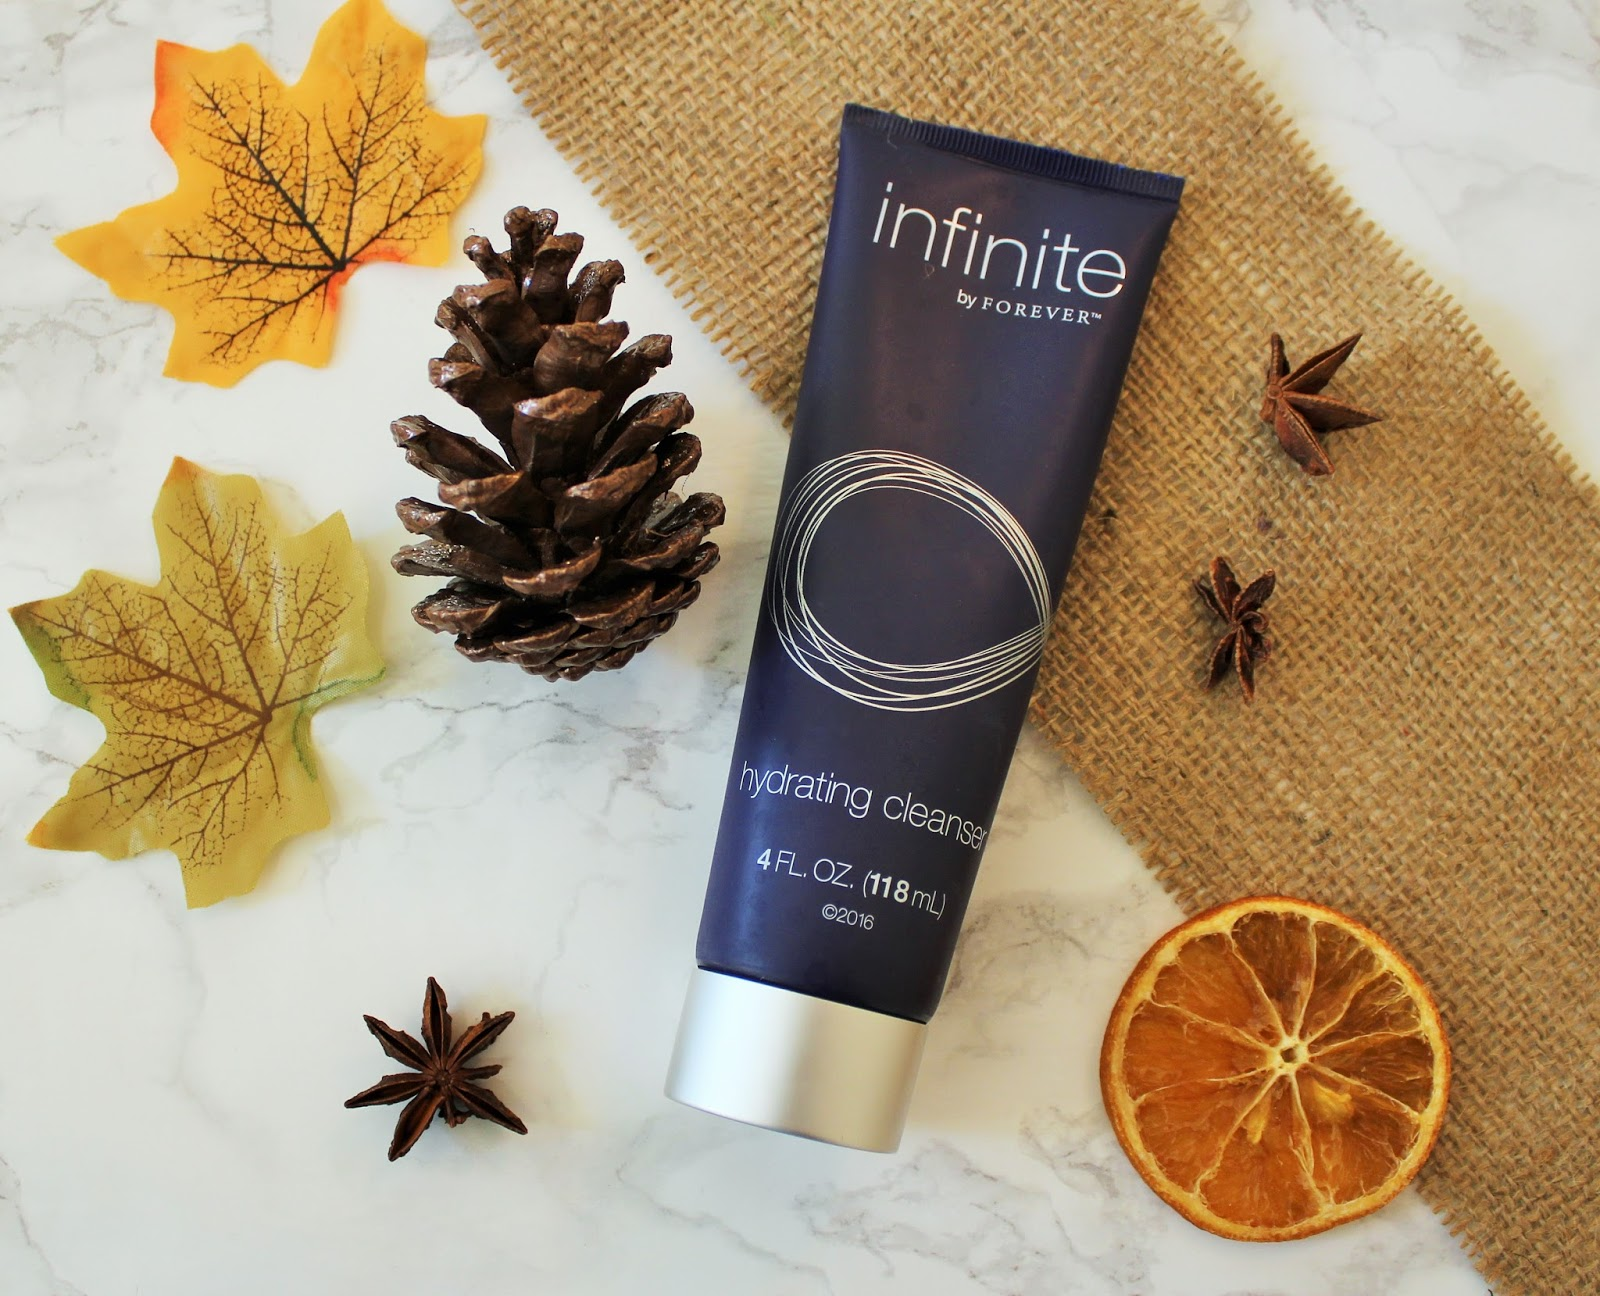 Infinite By Forever Skincare Review - 3